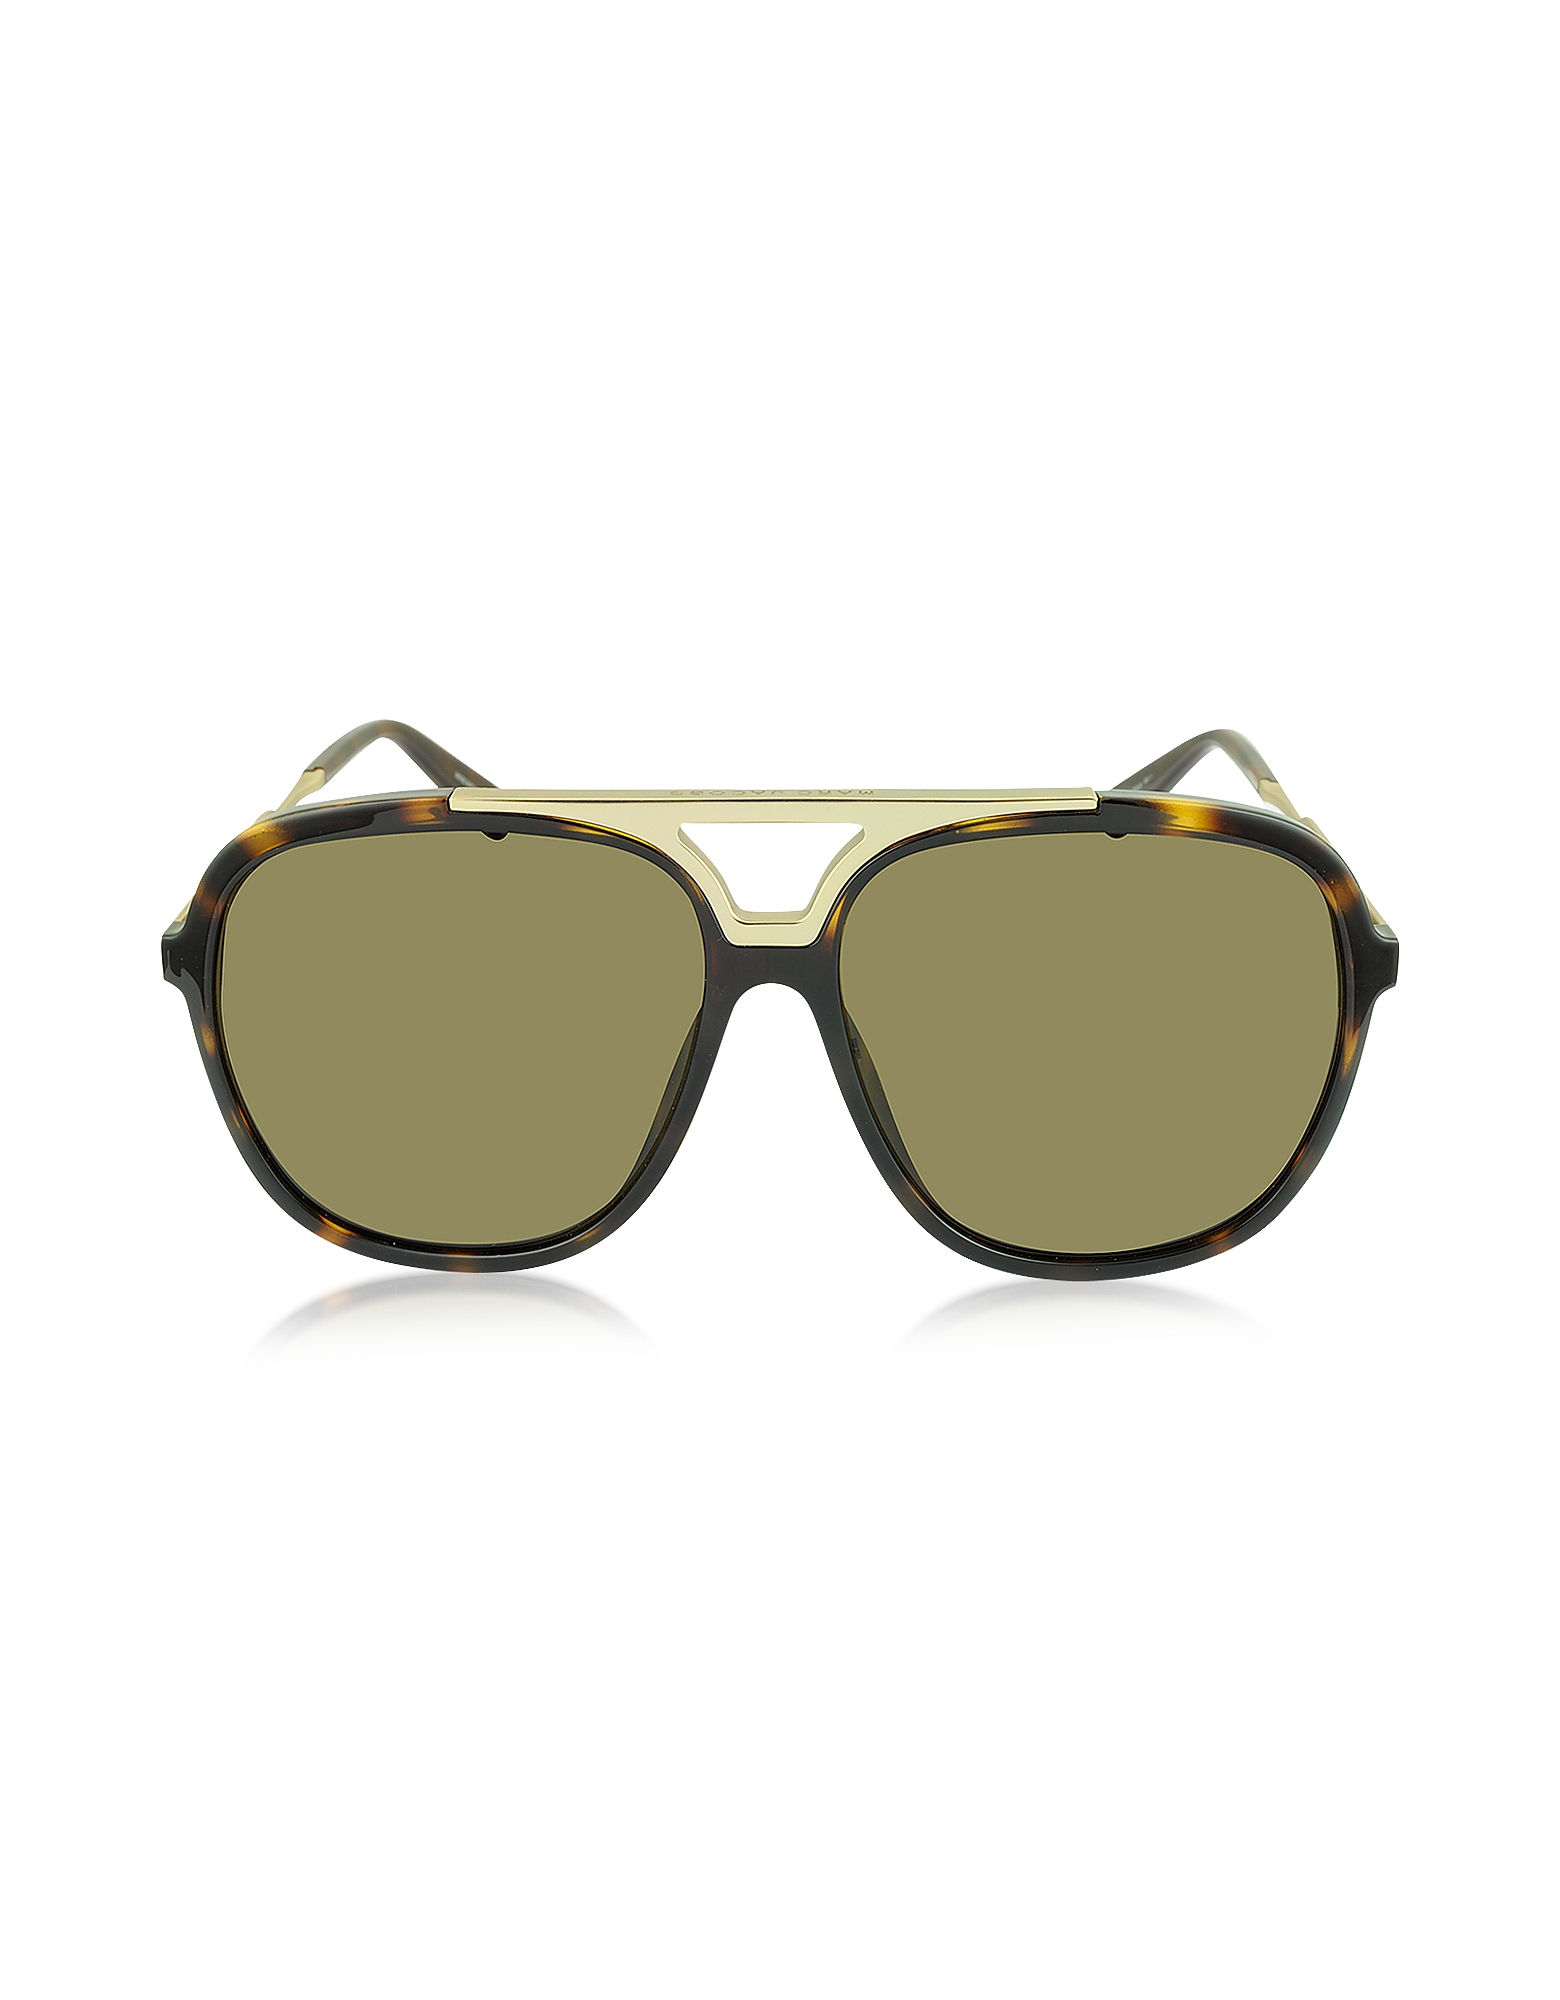 Marc Jacobs Designer Sunglasses,  MJ 618/S Acetate Men's Sunglasses